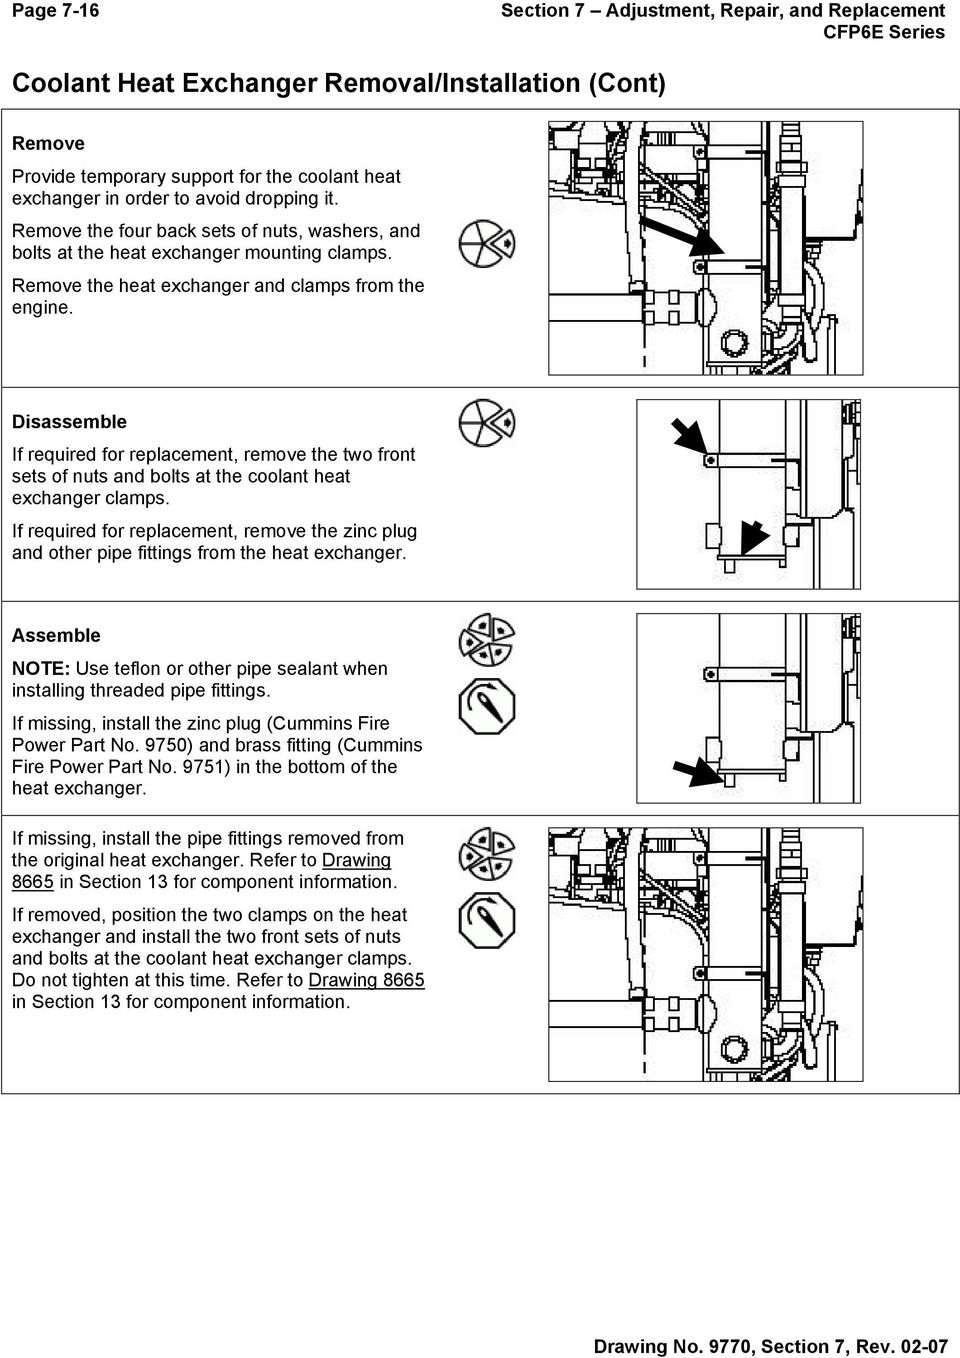 Disassemble If required for replacement, remove the two front sets of nuts  and bolts at. 17 Section 7 Adjustment, Repair ...